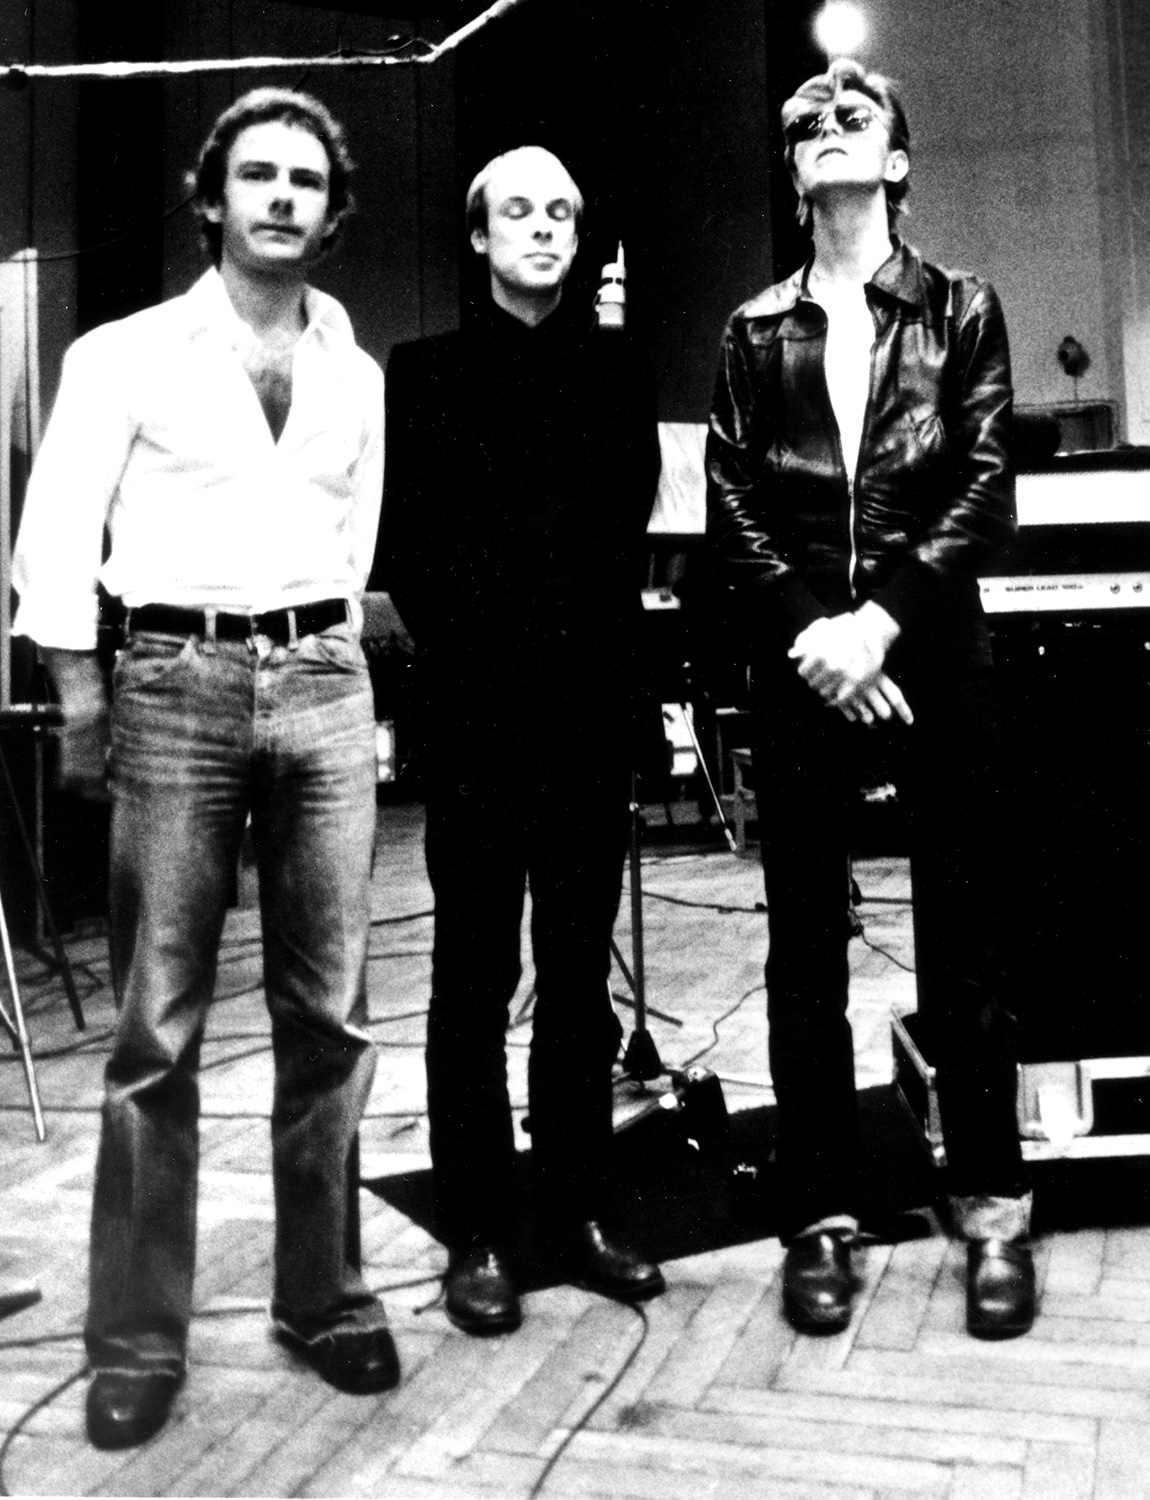 """Robert Fripp, Brian Eno and David Bowie pose for a portrait in the studio where they are recorded """"Heroes"""" in 1977 in Berlin, Germany"""